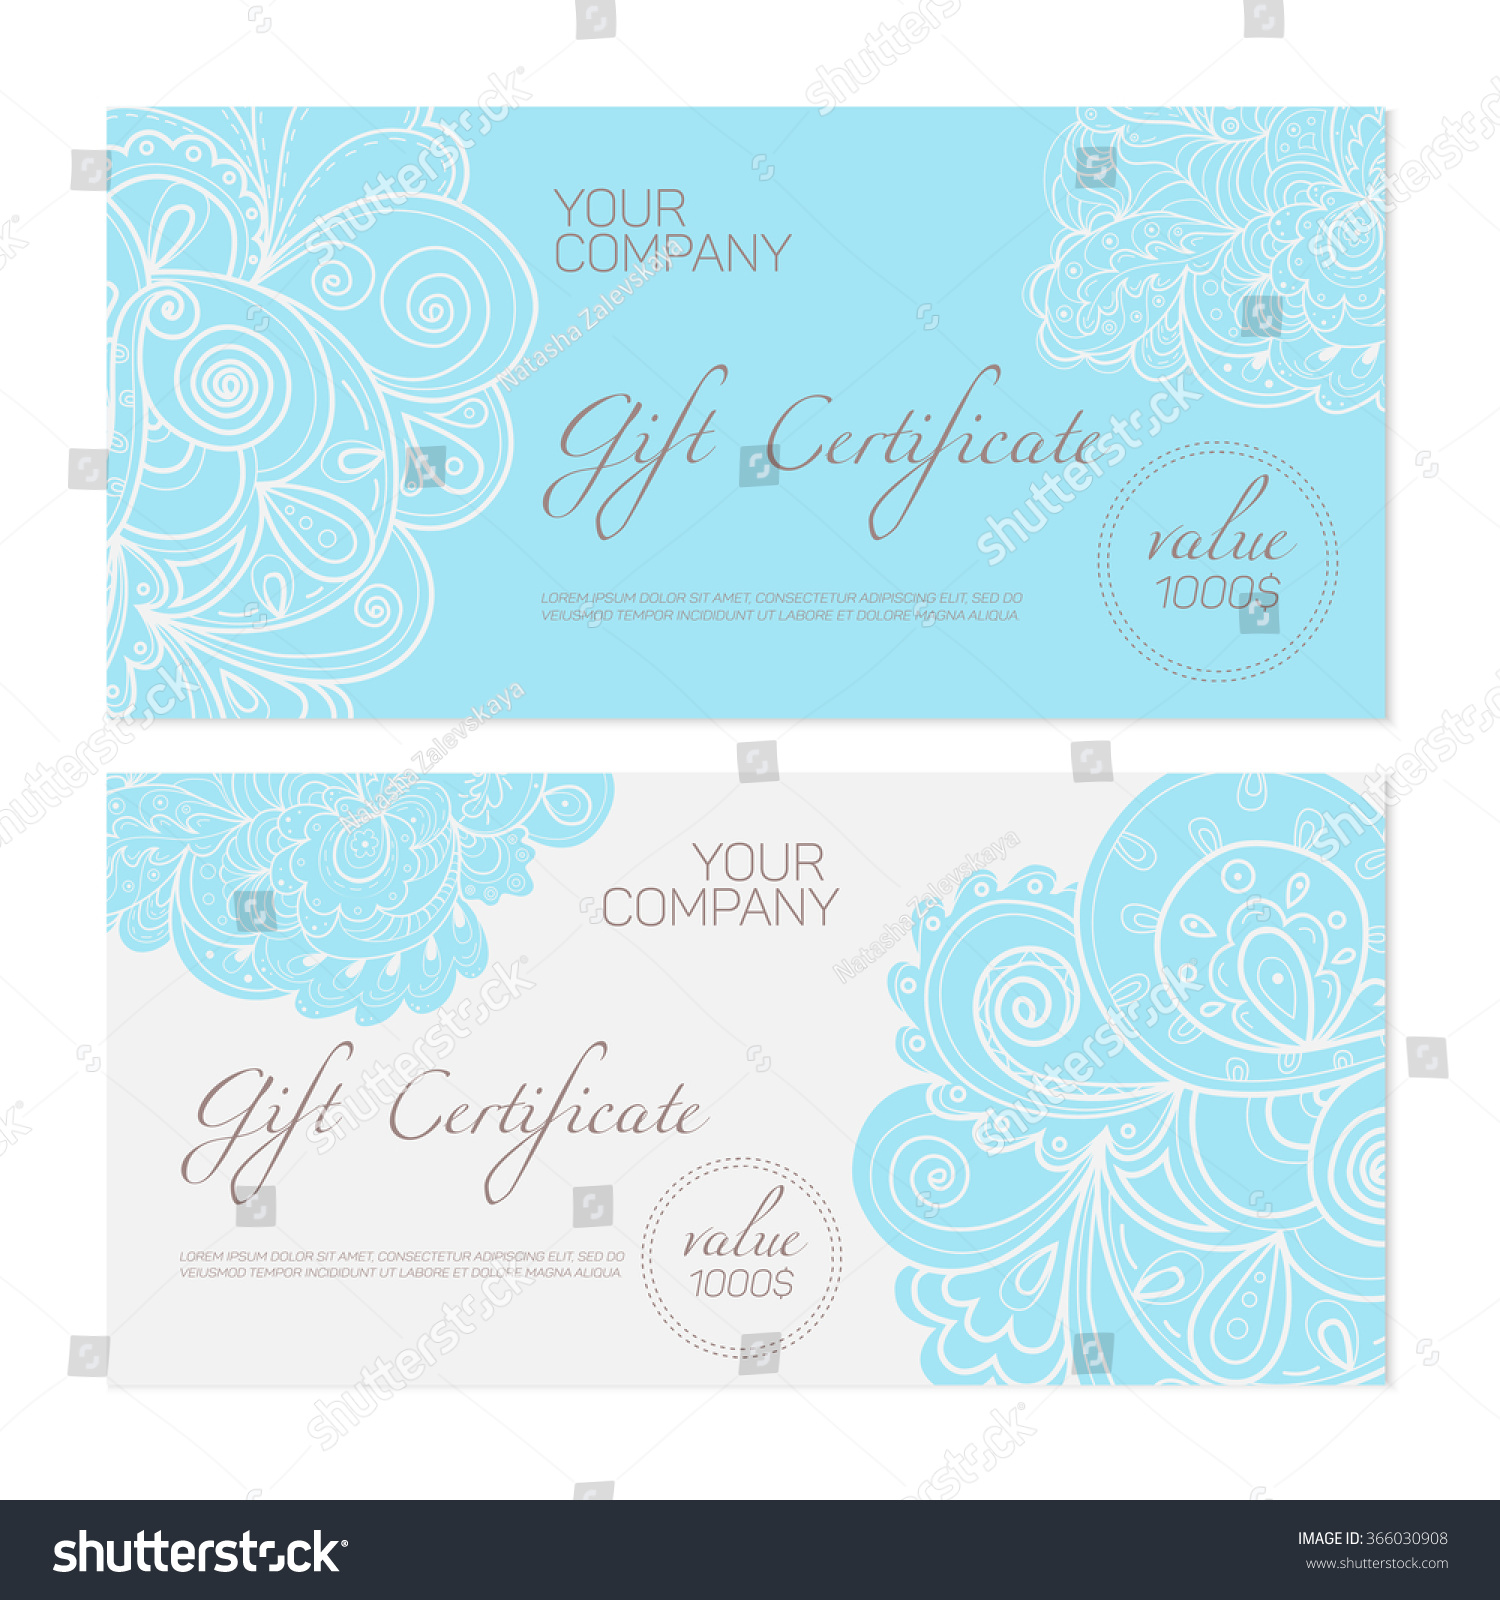 Elegant gift certificate template abstract ornamental stock vector elegant gift certificate template abstract ornamental background ideal for beauty and fashion companies pronofoot35fo Images